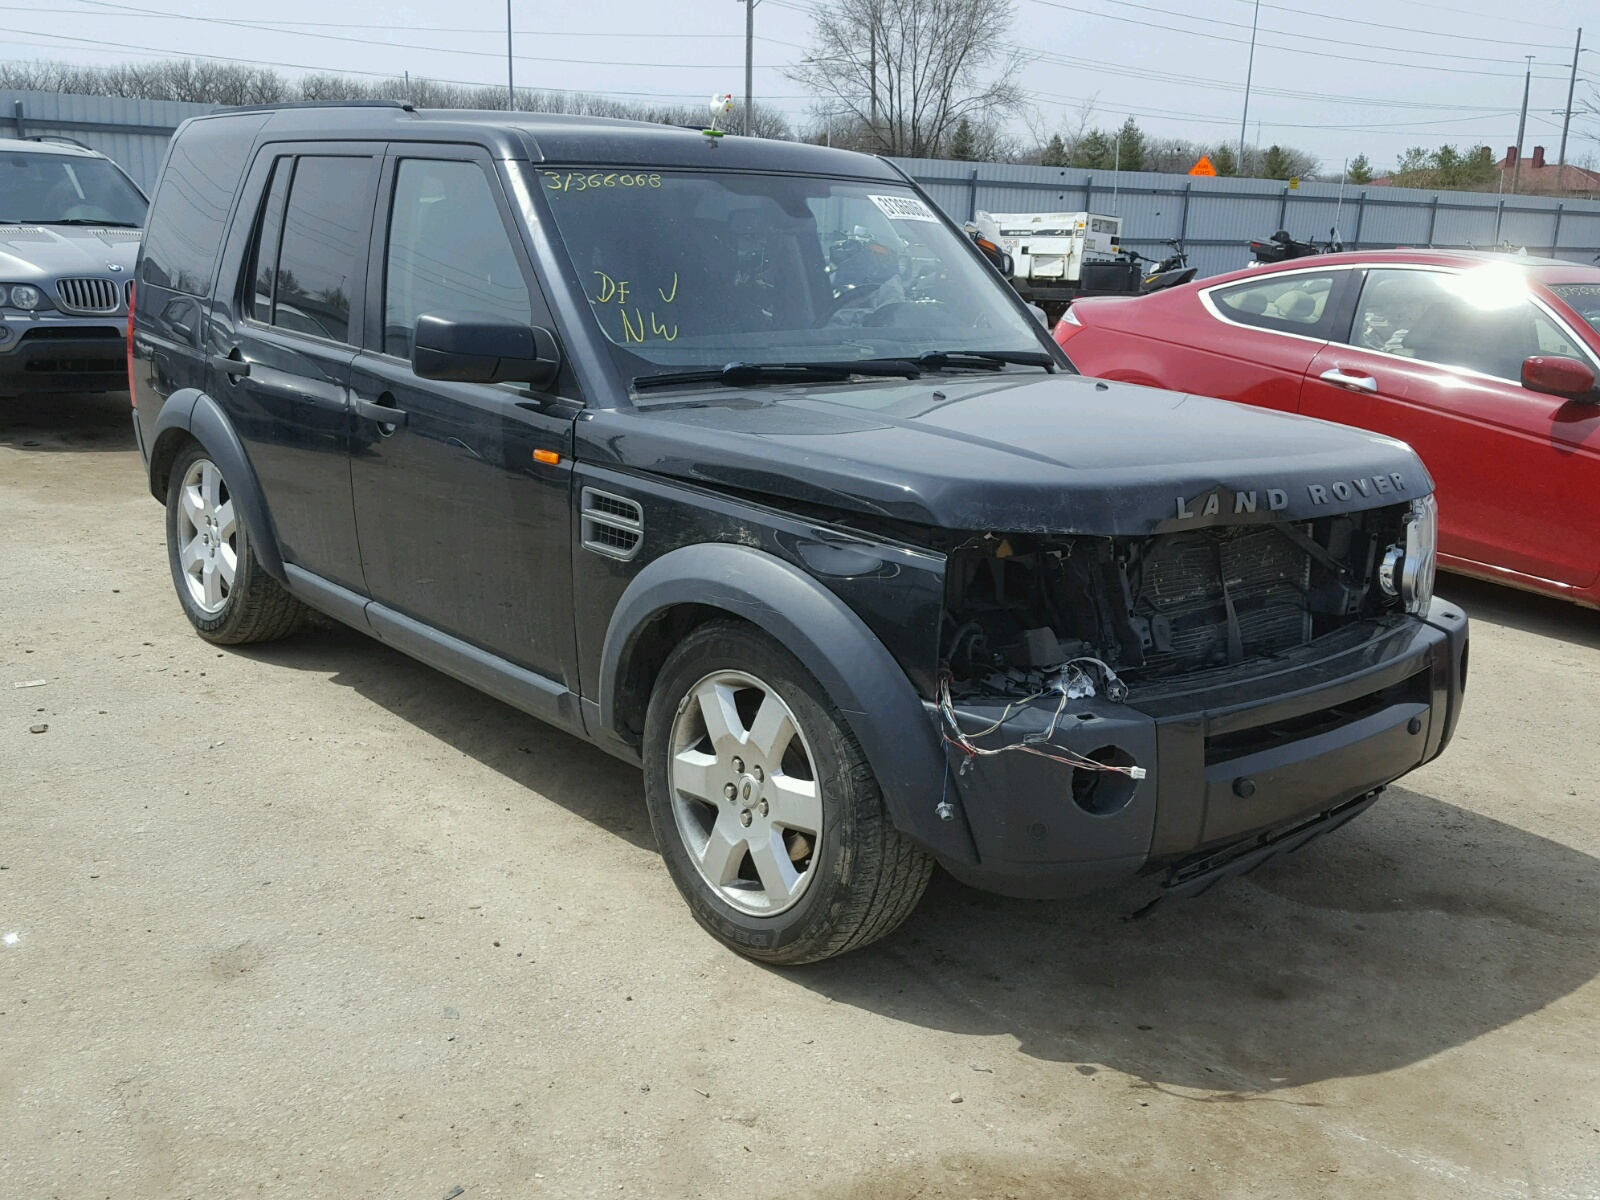 at for lot ma land hse north cars rover landrover sale billerica copart